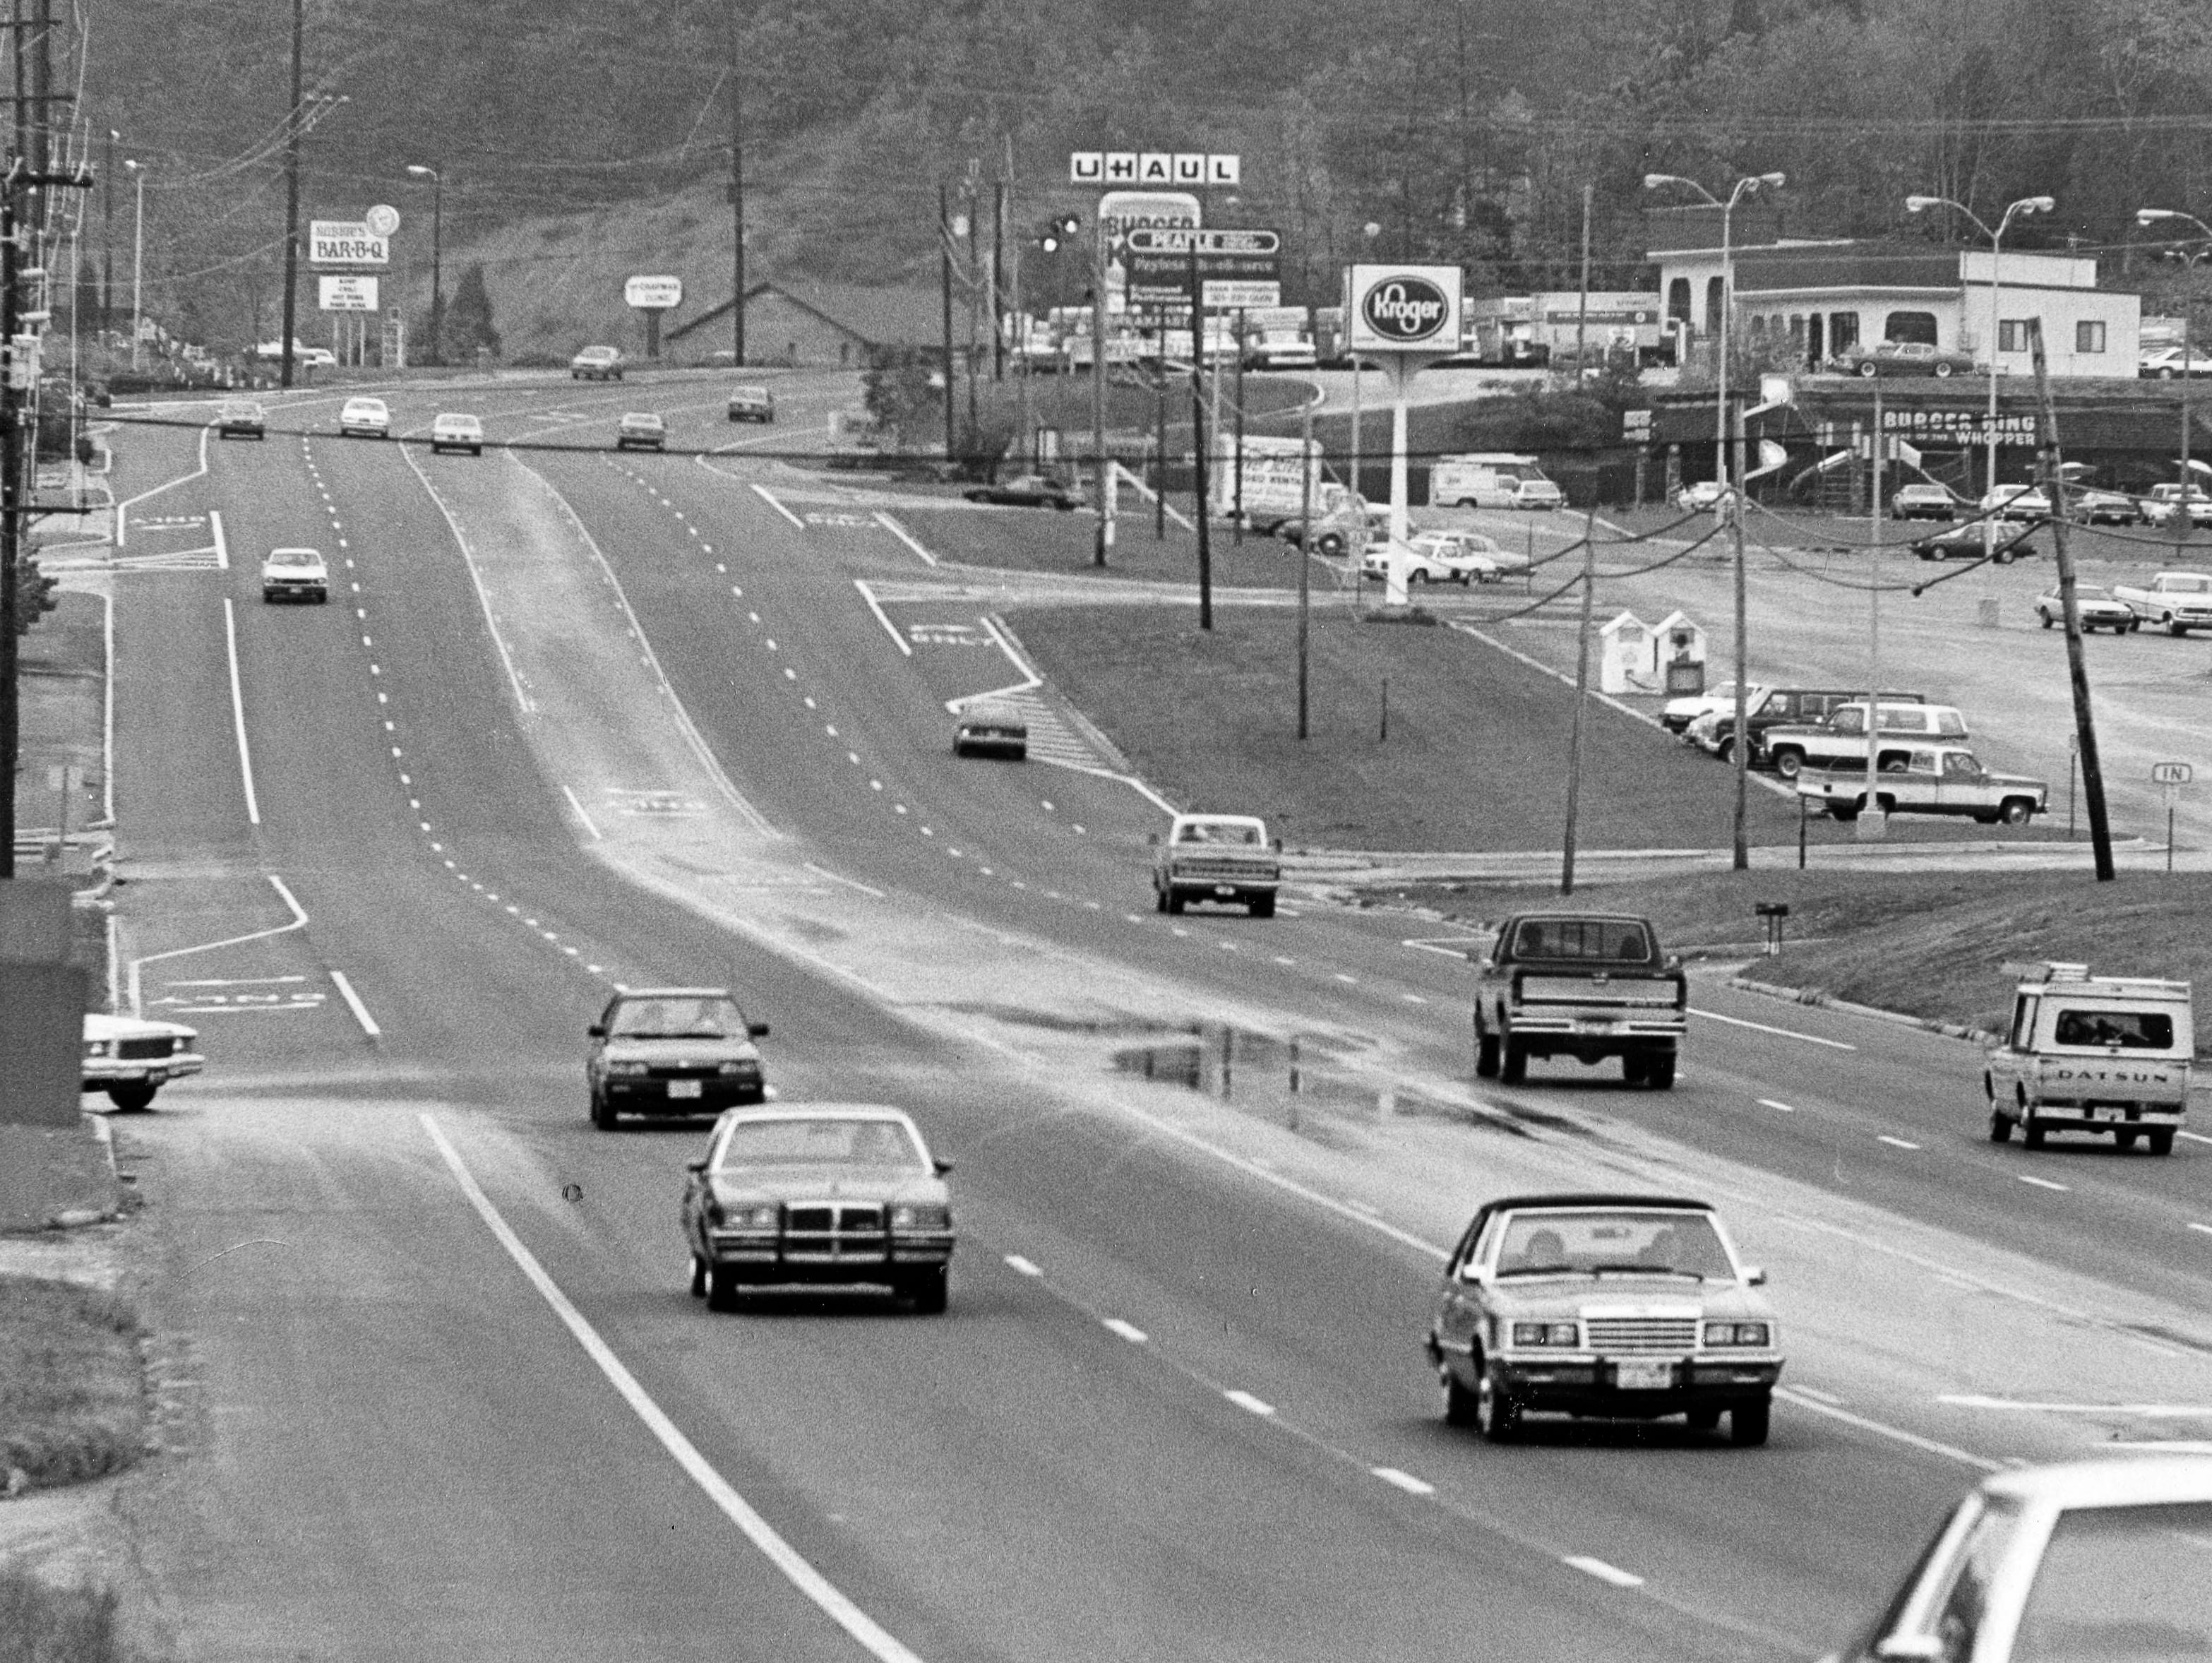 Chapman Highway in 1985 accompanying a story about new traffic lights for the road.